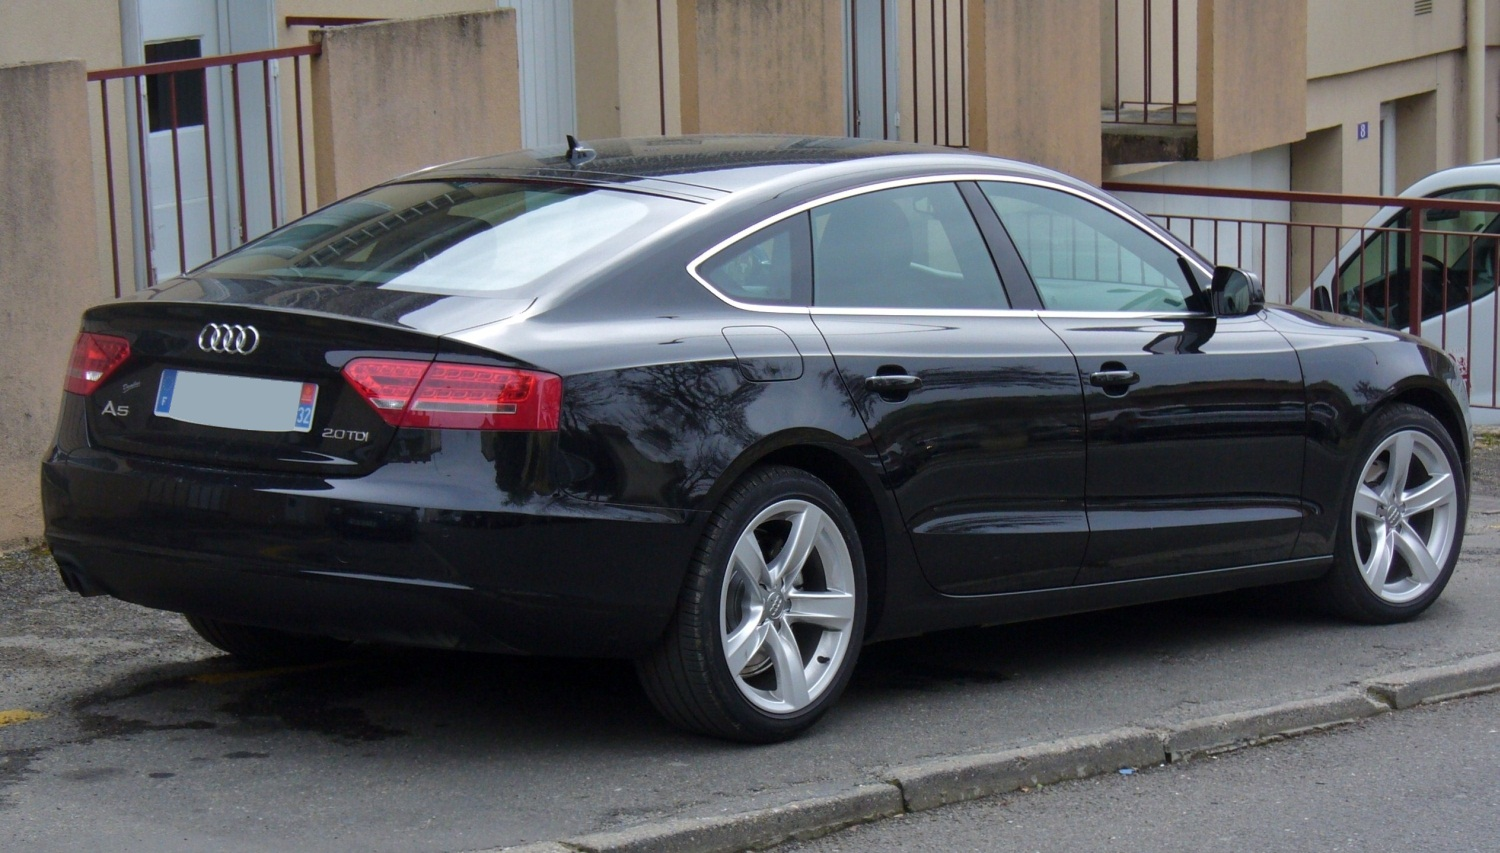 2011 Audi A5 Review Ratings Specs Prices and Photos